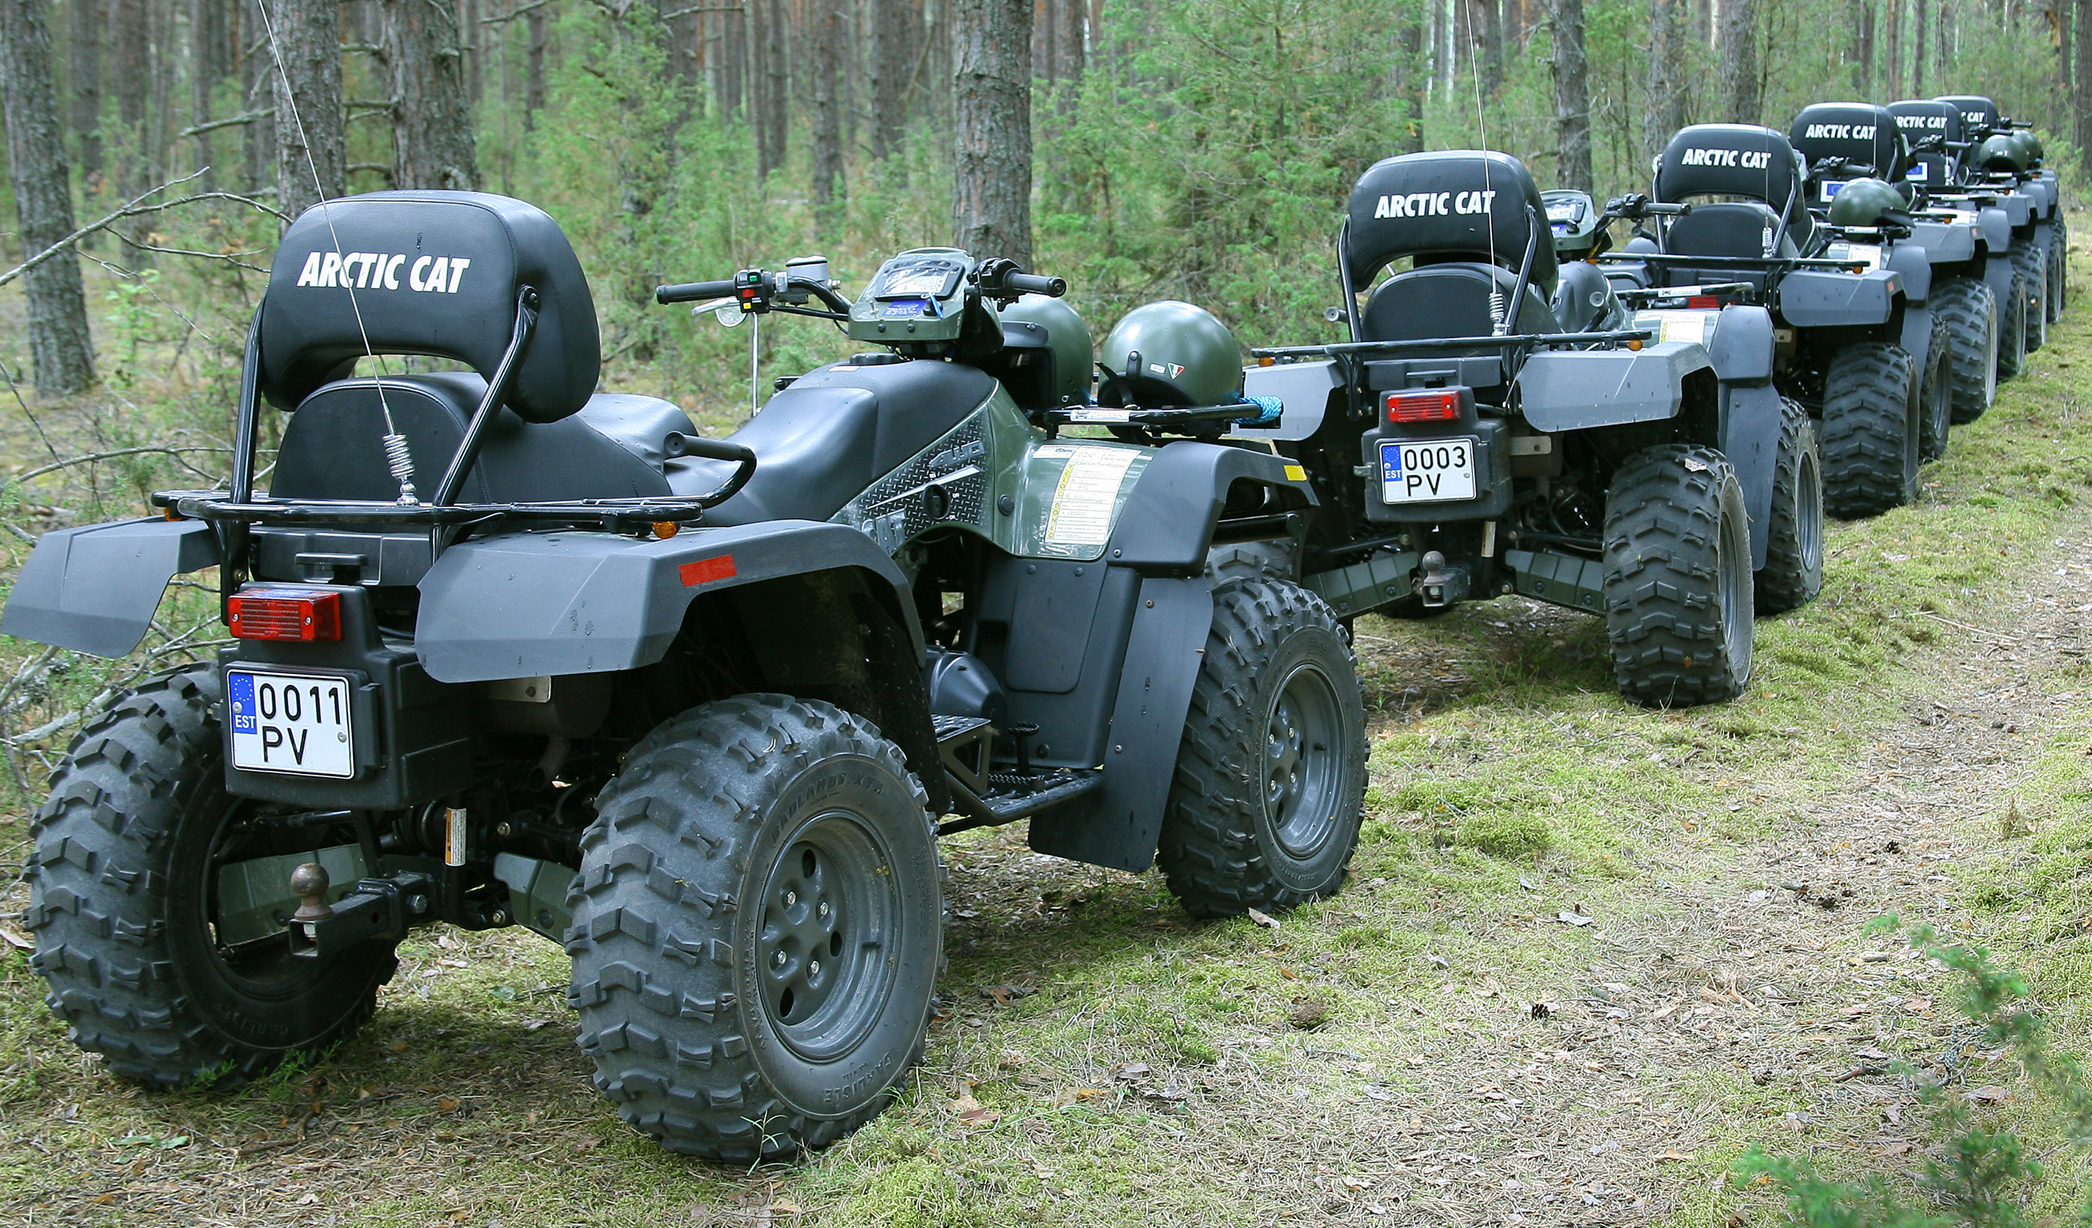 Arctic Cat Utv Factory Warranty